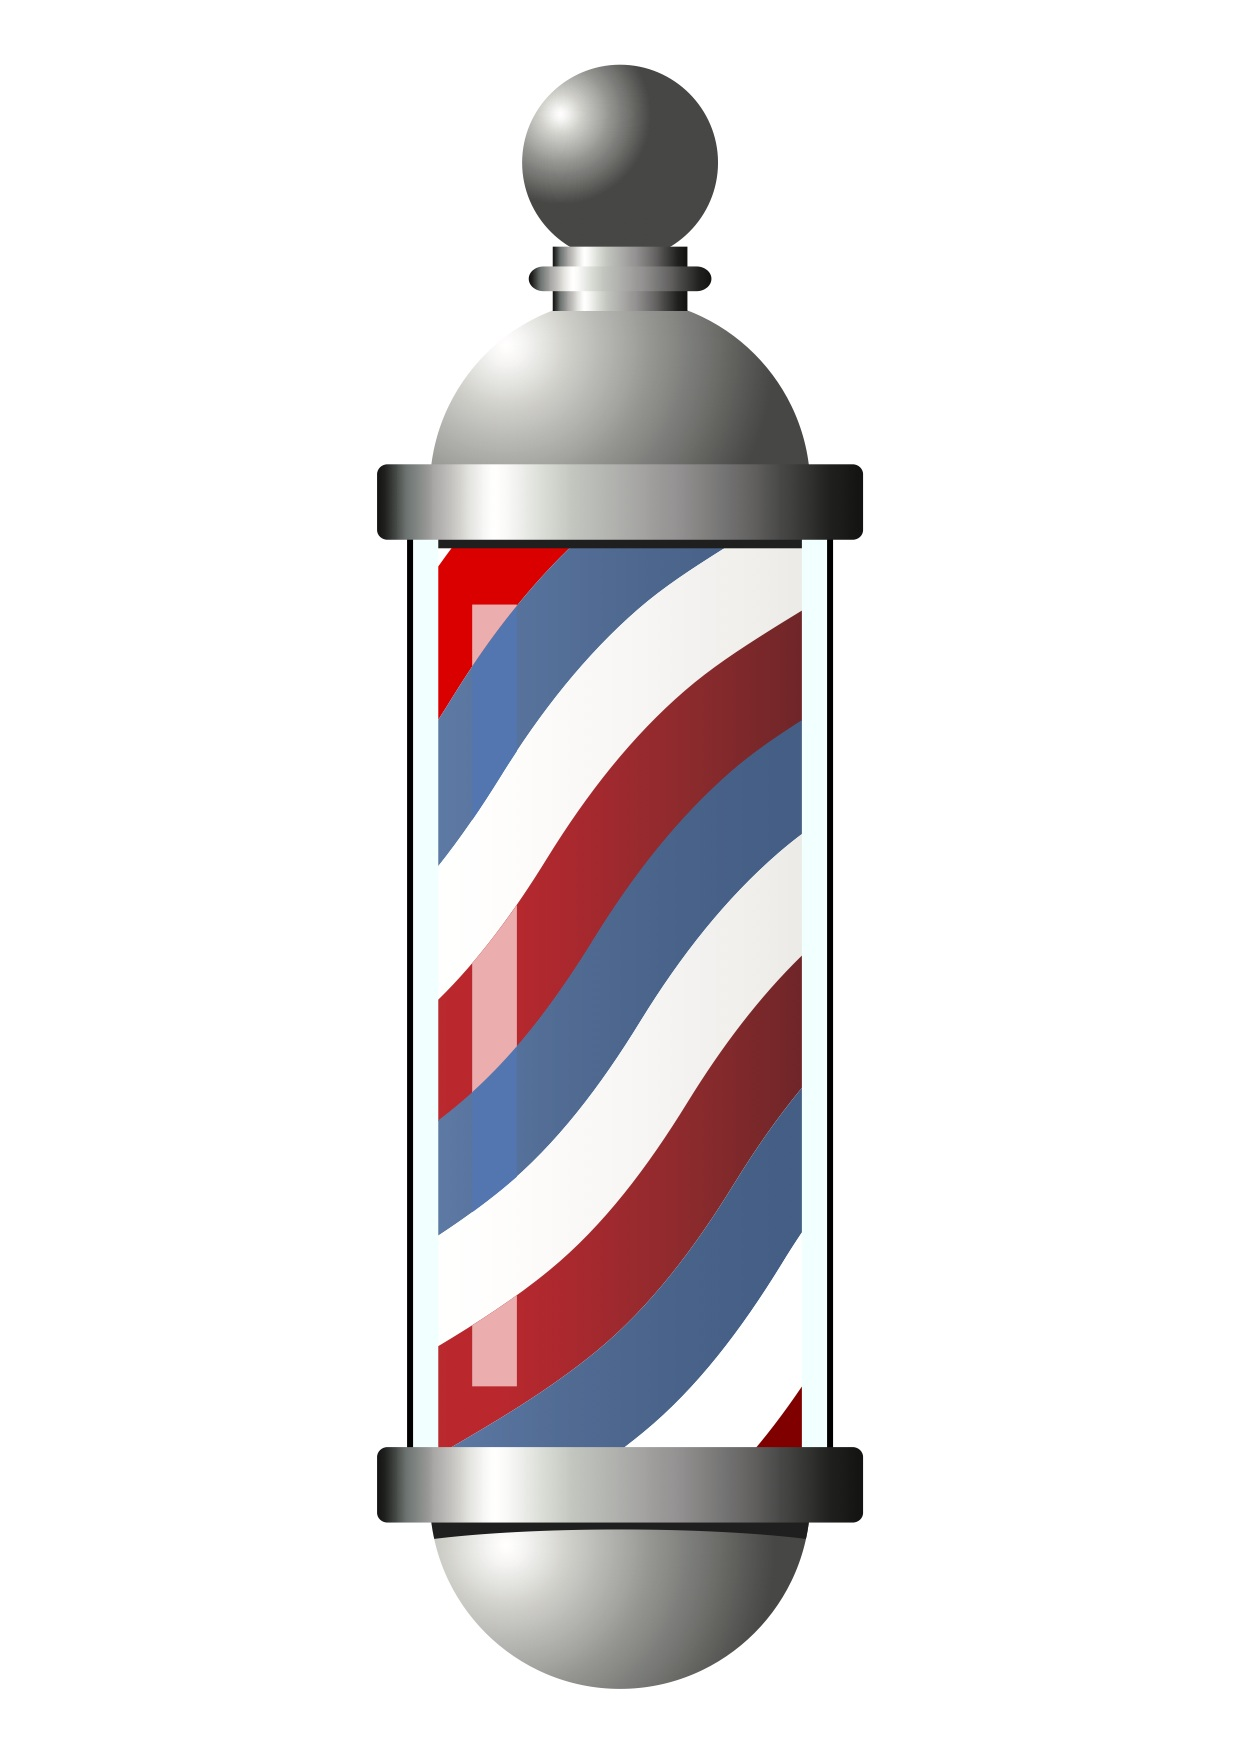 Barber Vector : Barber Pole Vector - ClipArt Best